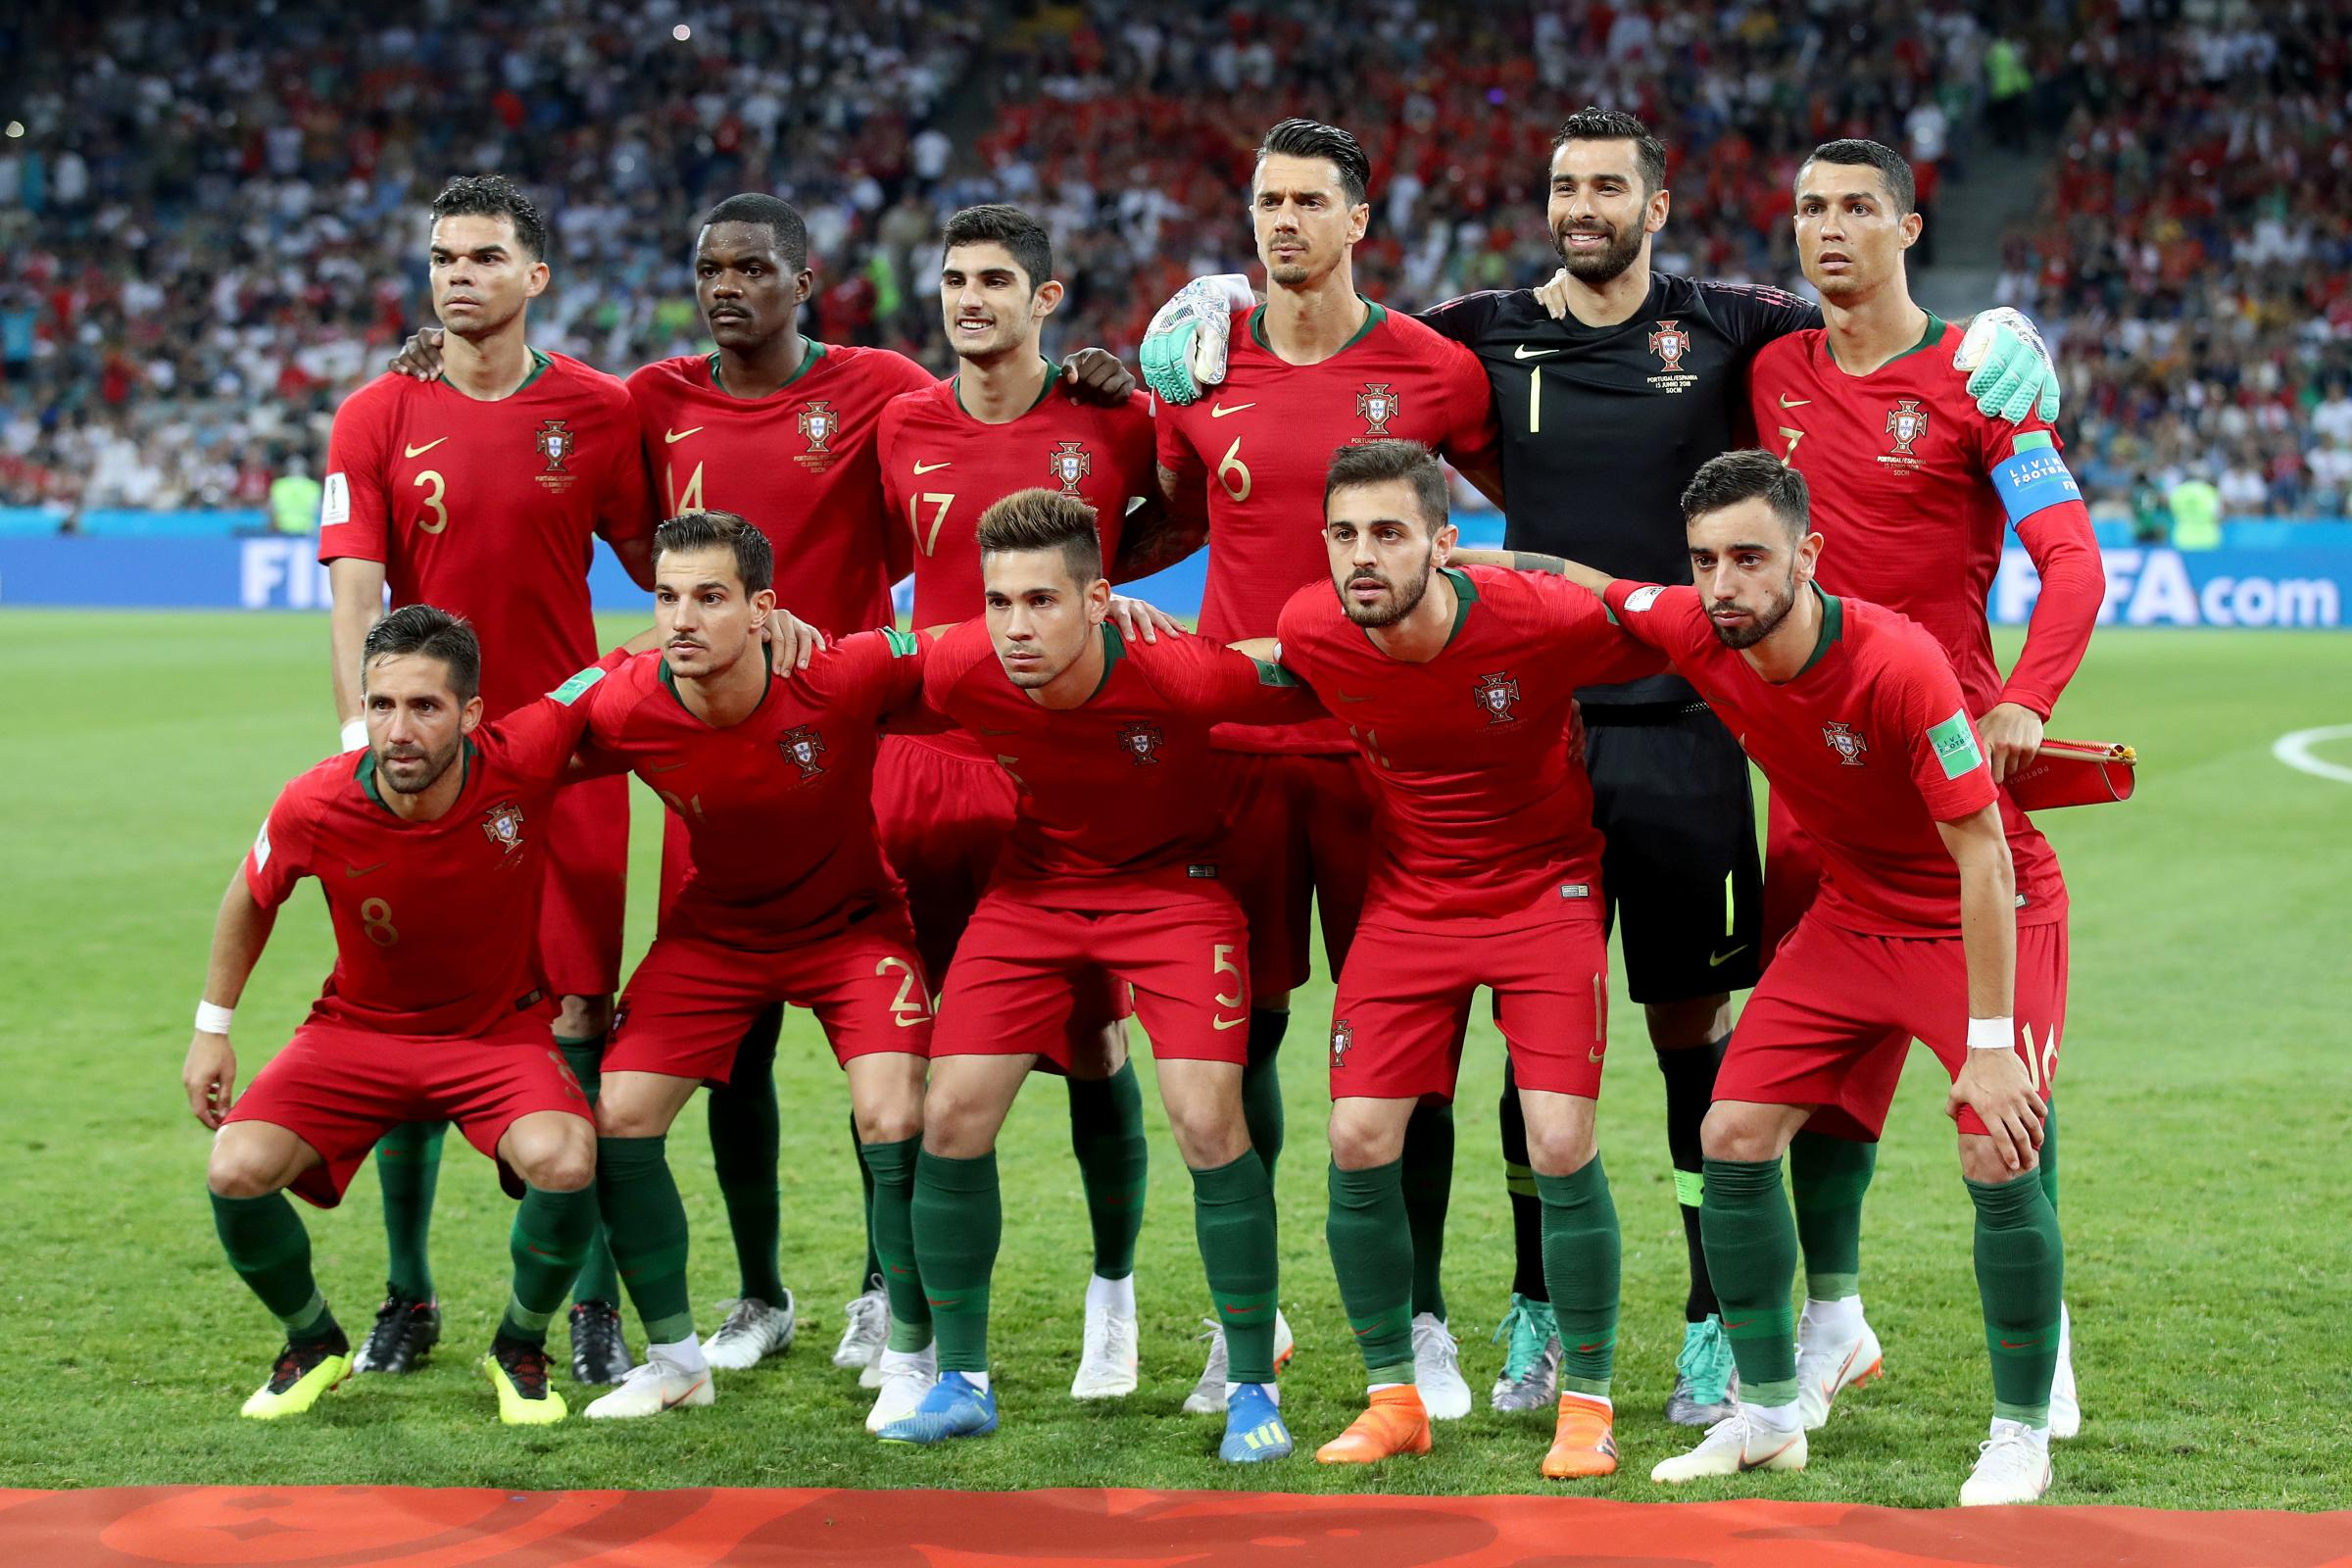 Cristiano Ronaldo, back right, and Portugal will be seeking a first World Cup 2018 win against Morocco on Wednesday